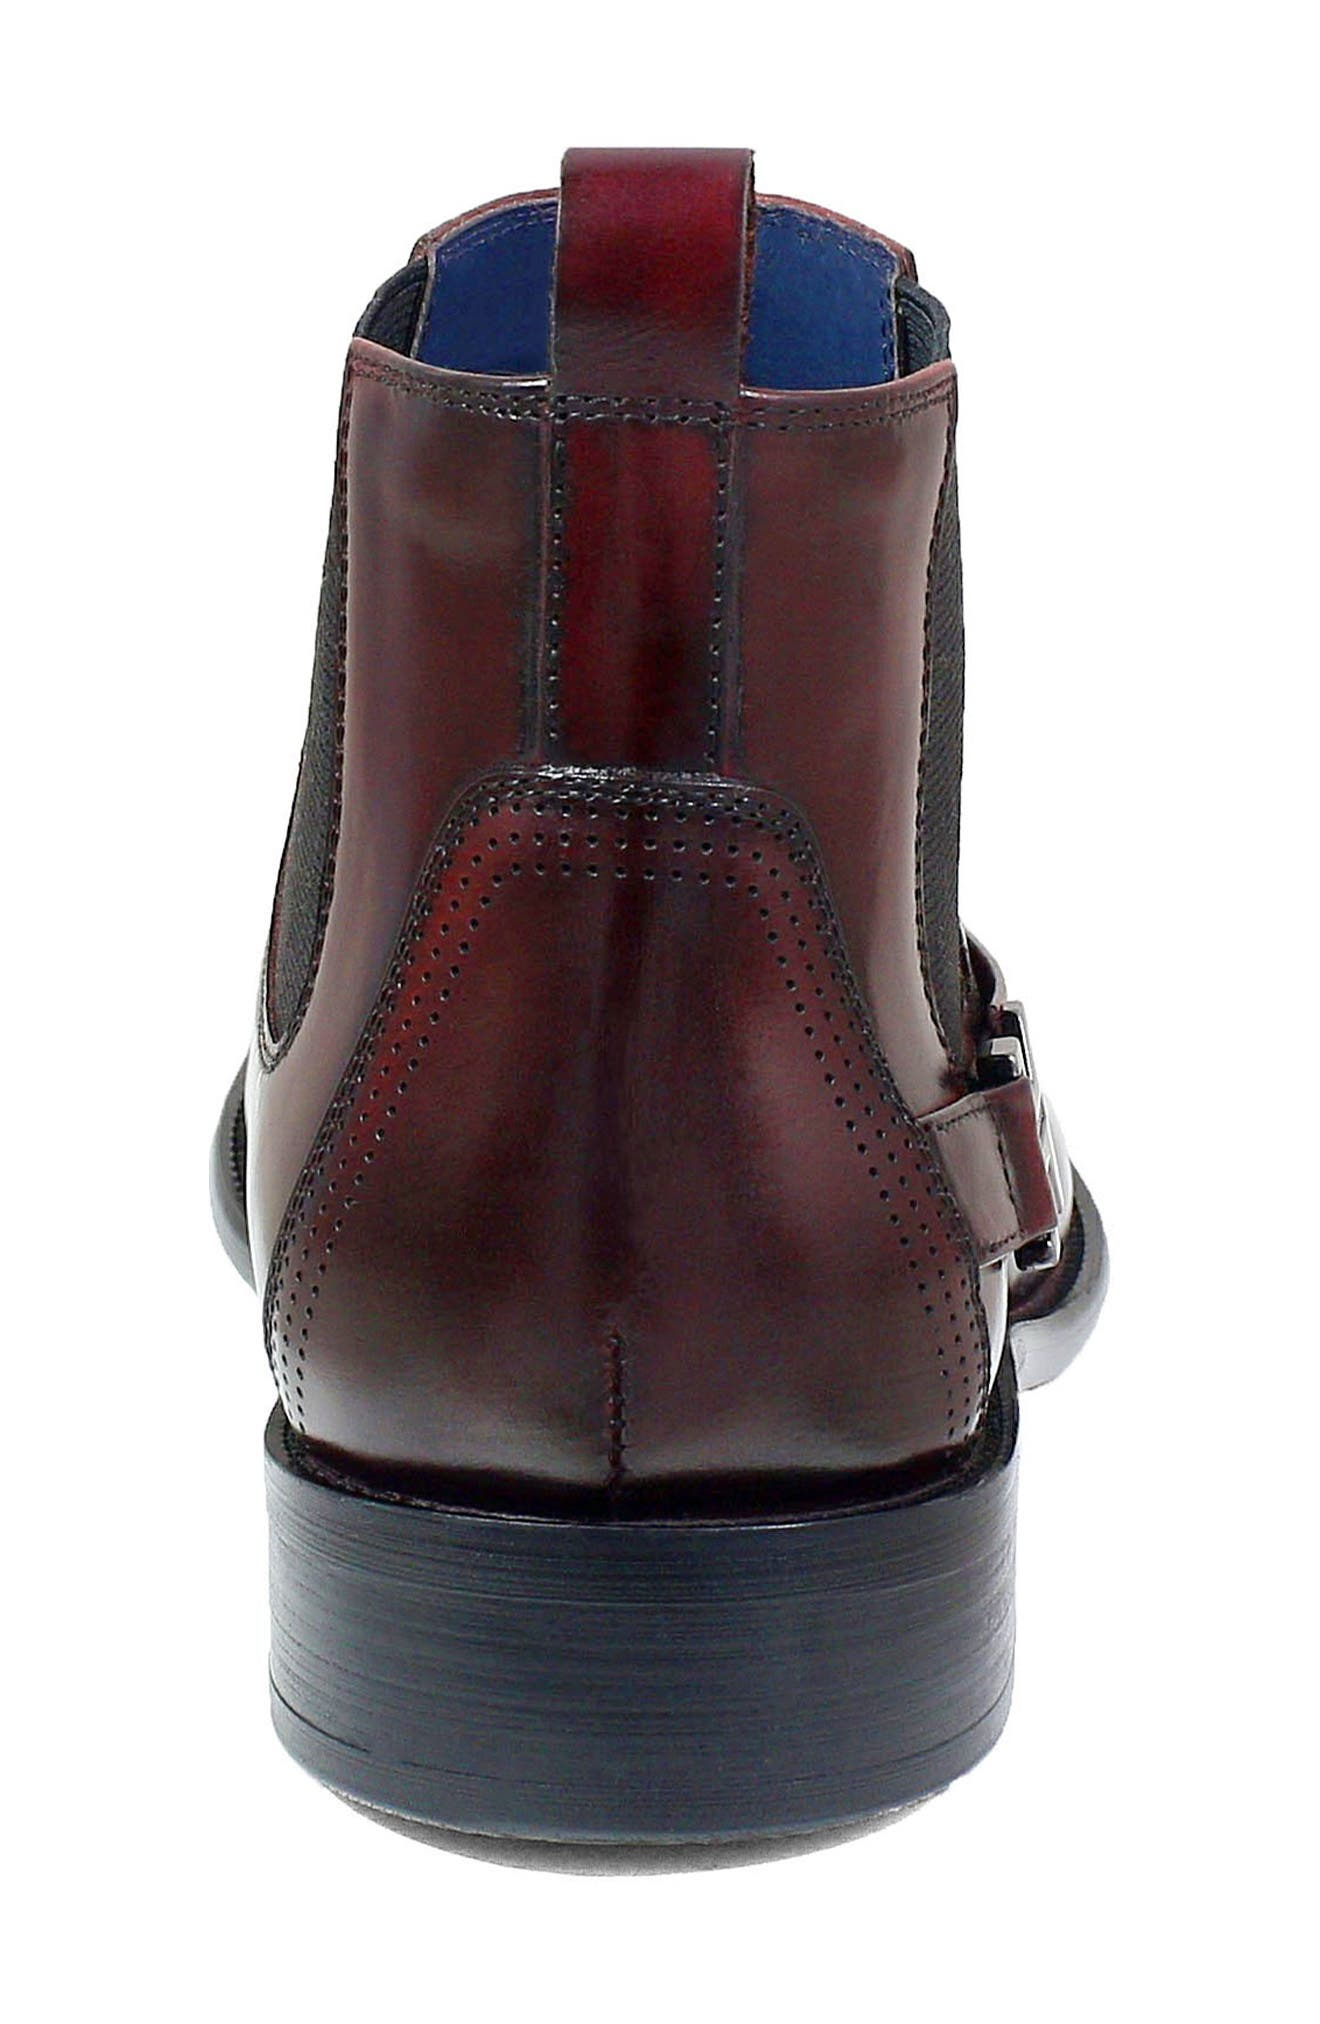 Joffrey Chelsea Boot,                             Alternate thumbnail 8, color,                             BURGUNDY LEATHER